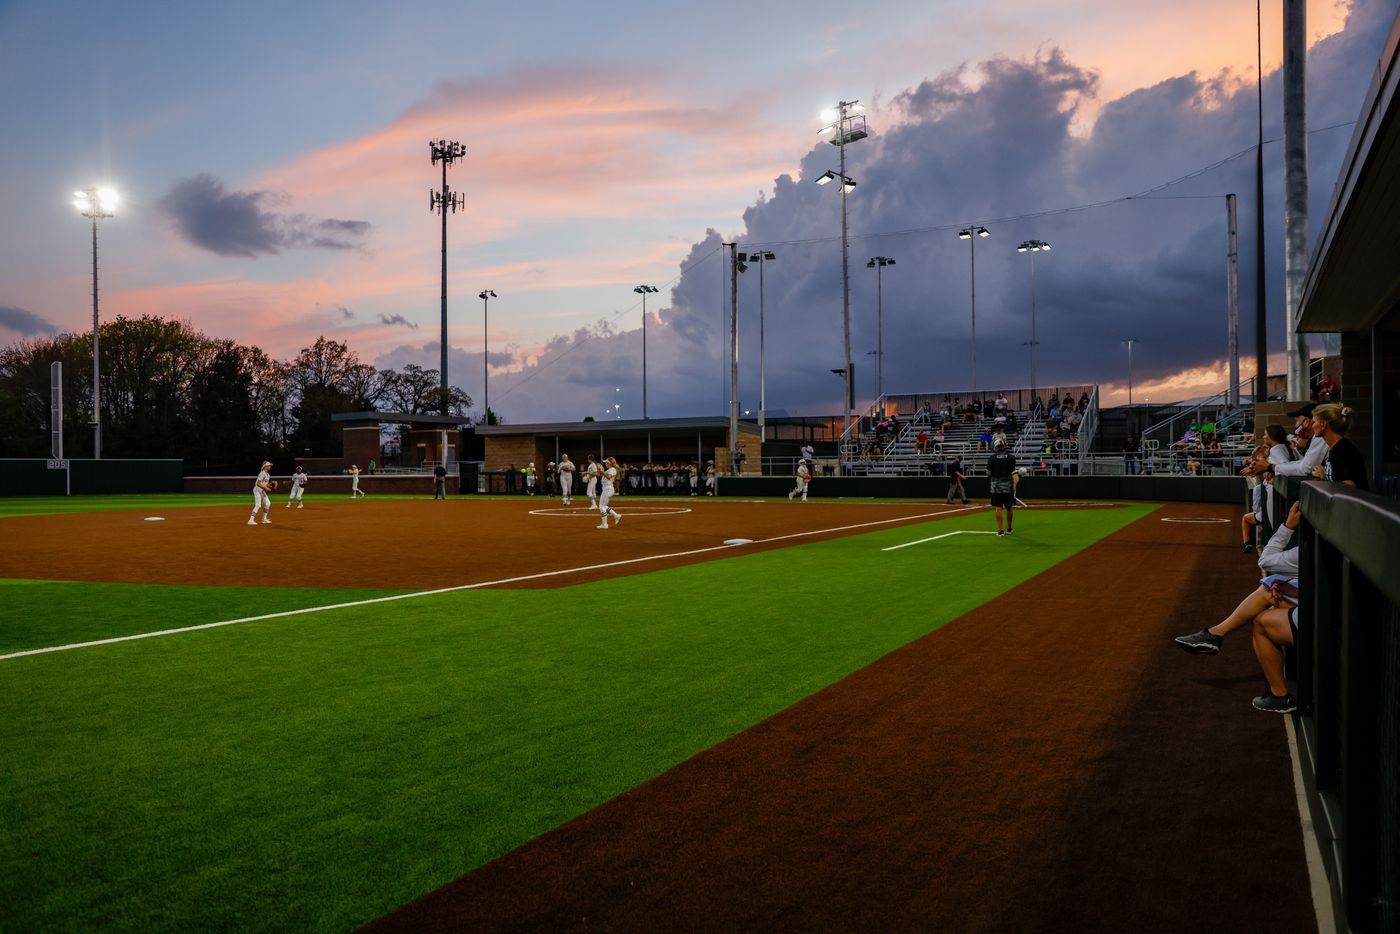 The sun sets during a nondistrict high school softball game between Denton Guyer and Keller in Denton on Tuesday, March 30, 2021. (Juan Figueroa/ The Dallas Morning News)